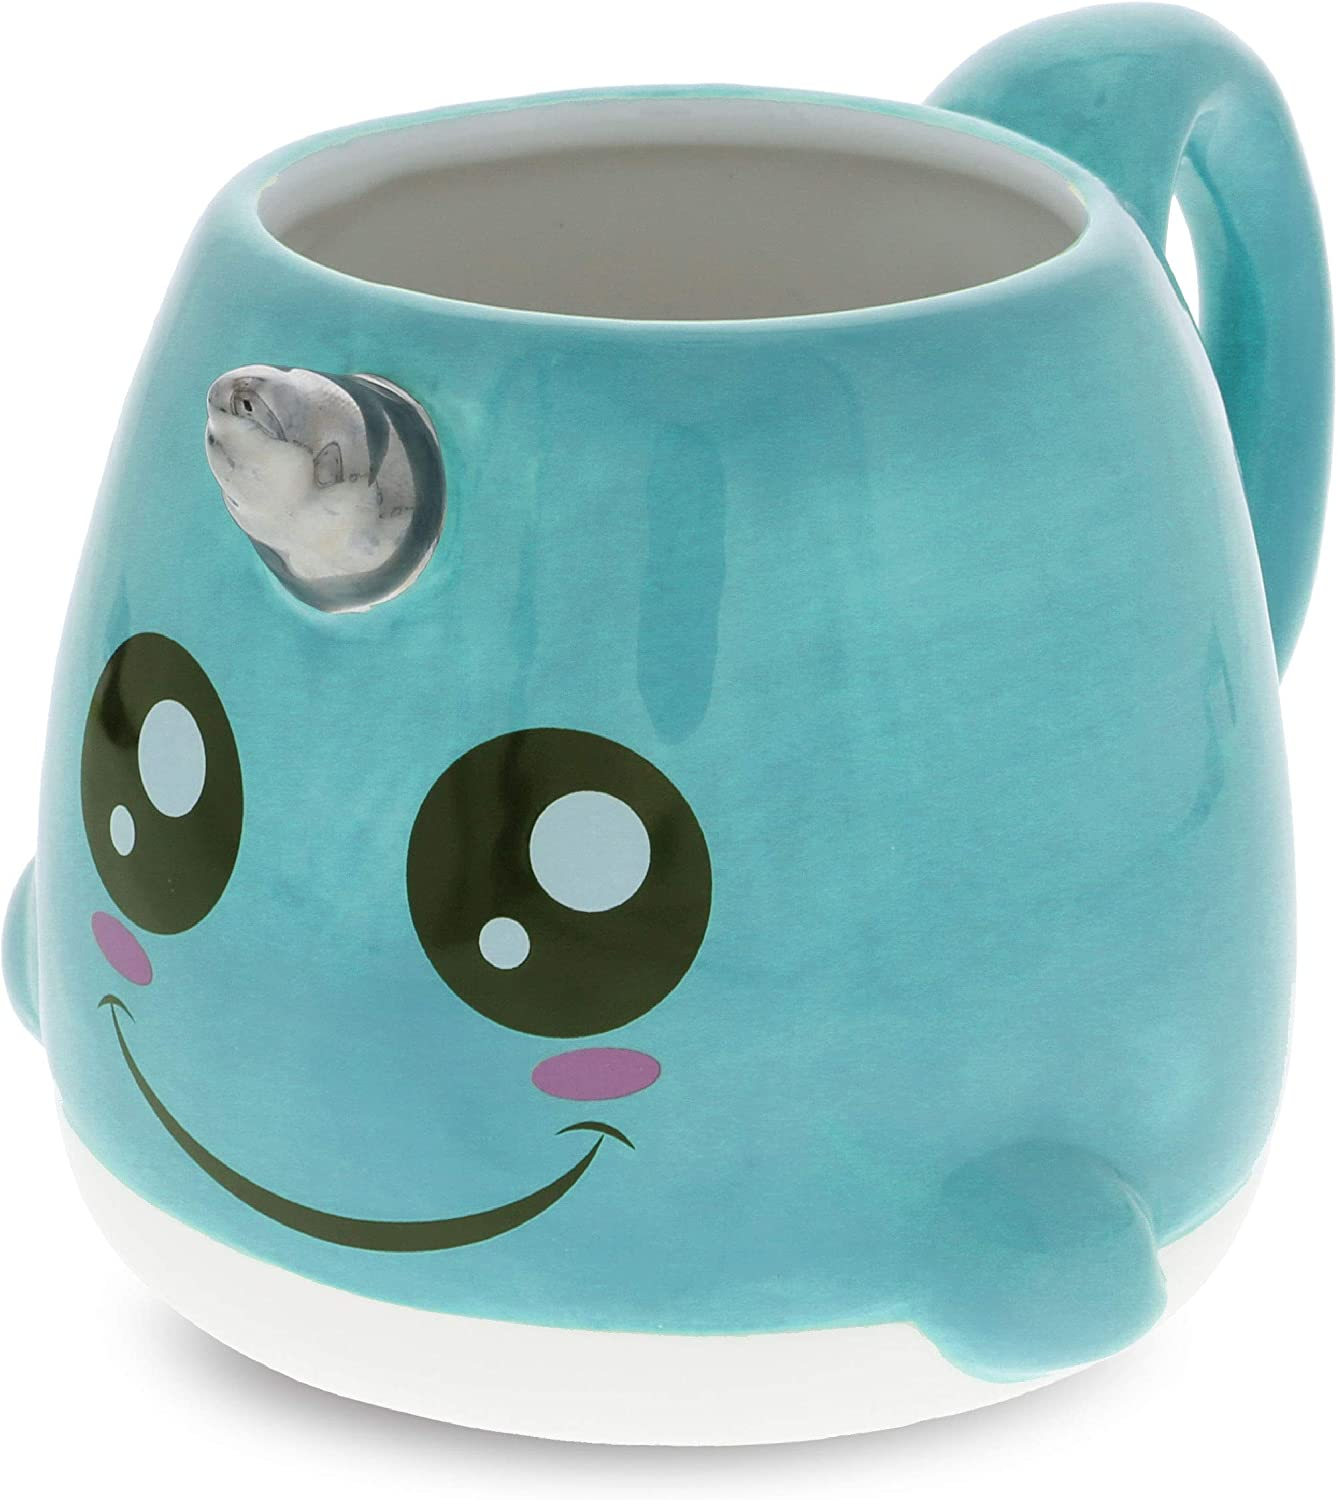 Mugniv Narwhal Sea Unicorn Novelty Mug: Ceramic Cute Coffee Mugs & Tea Cup, Cool & Unique Unicorn Coffee Mug for Coffee Lovers Gifts, Kids Mugs For Hot Chocolate, Narwhal Decor Kitchen Cups - 19.8 Oz